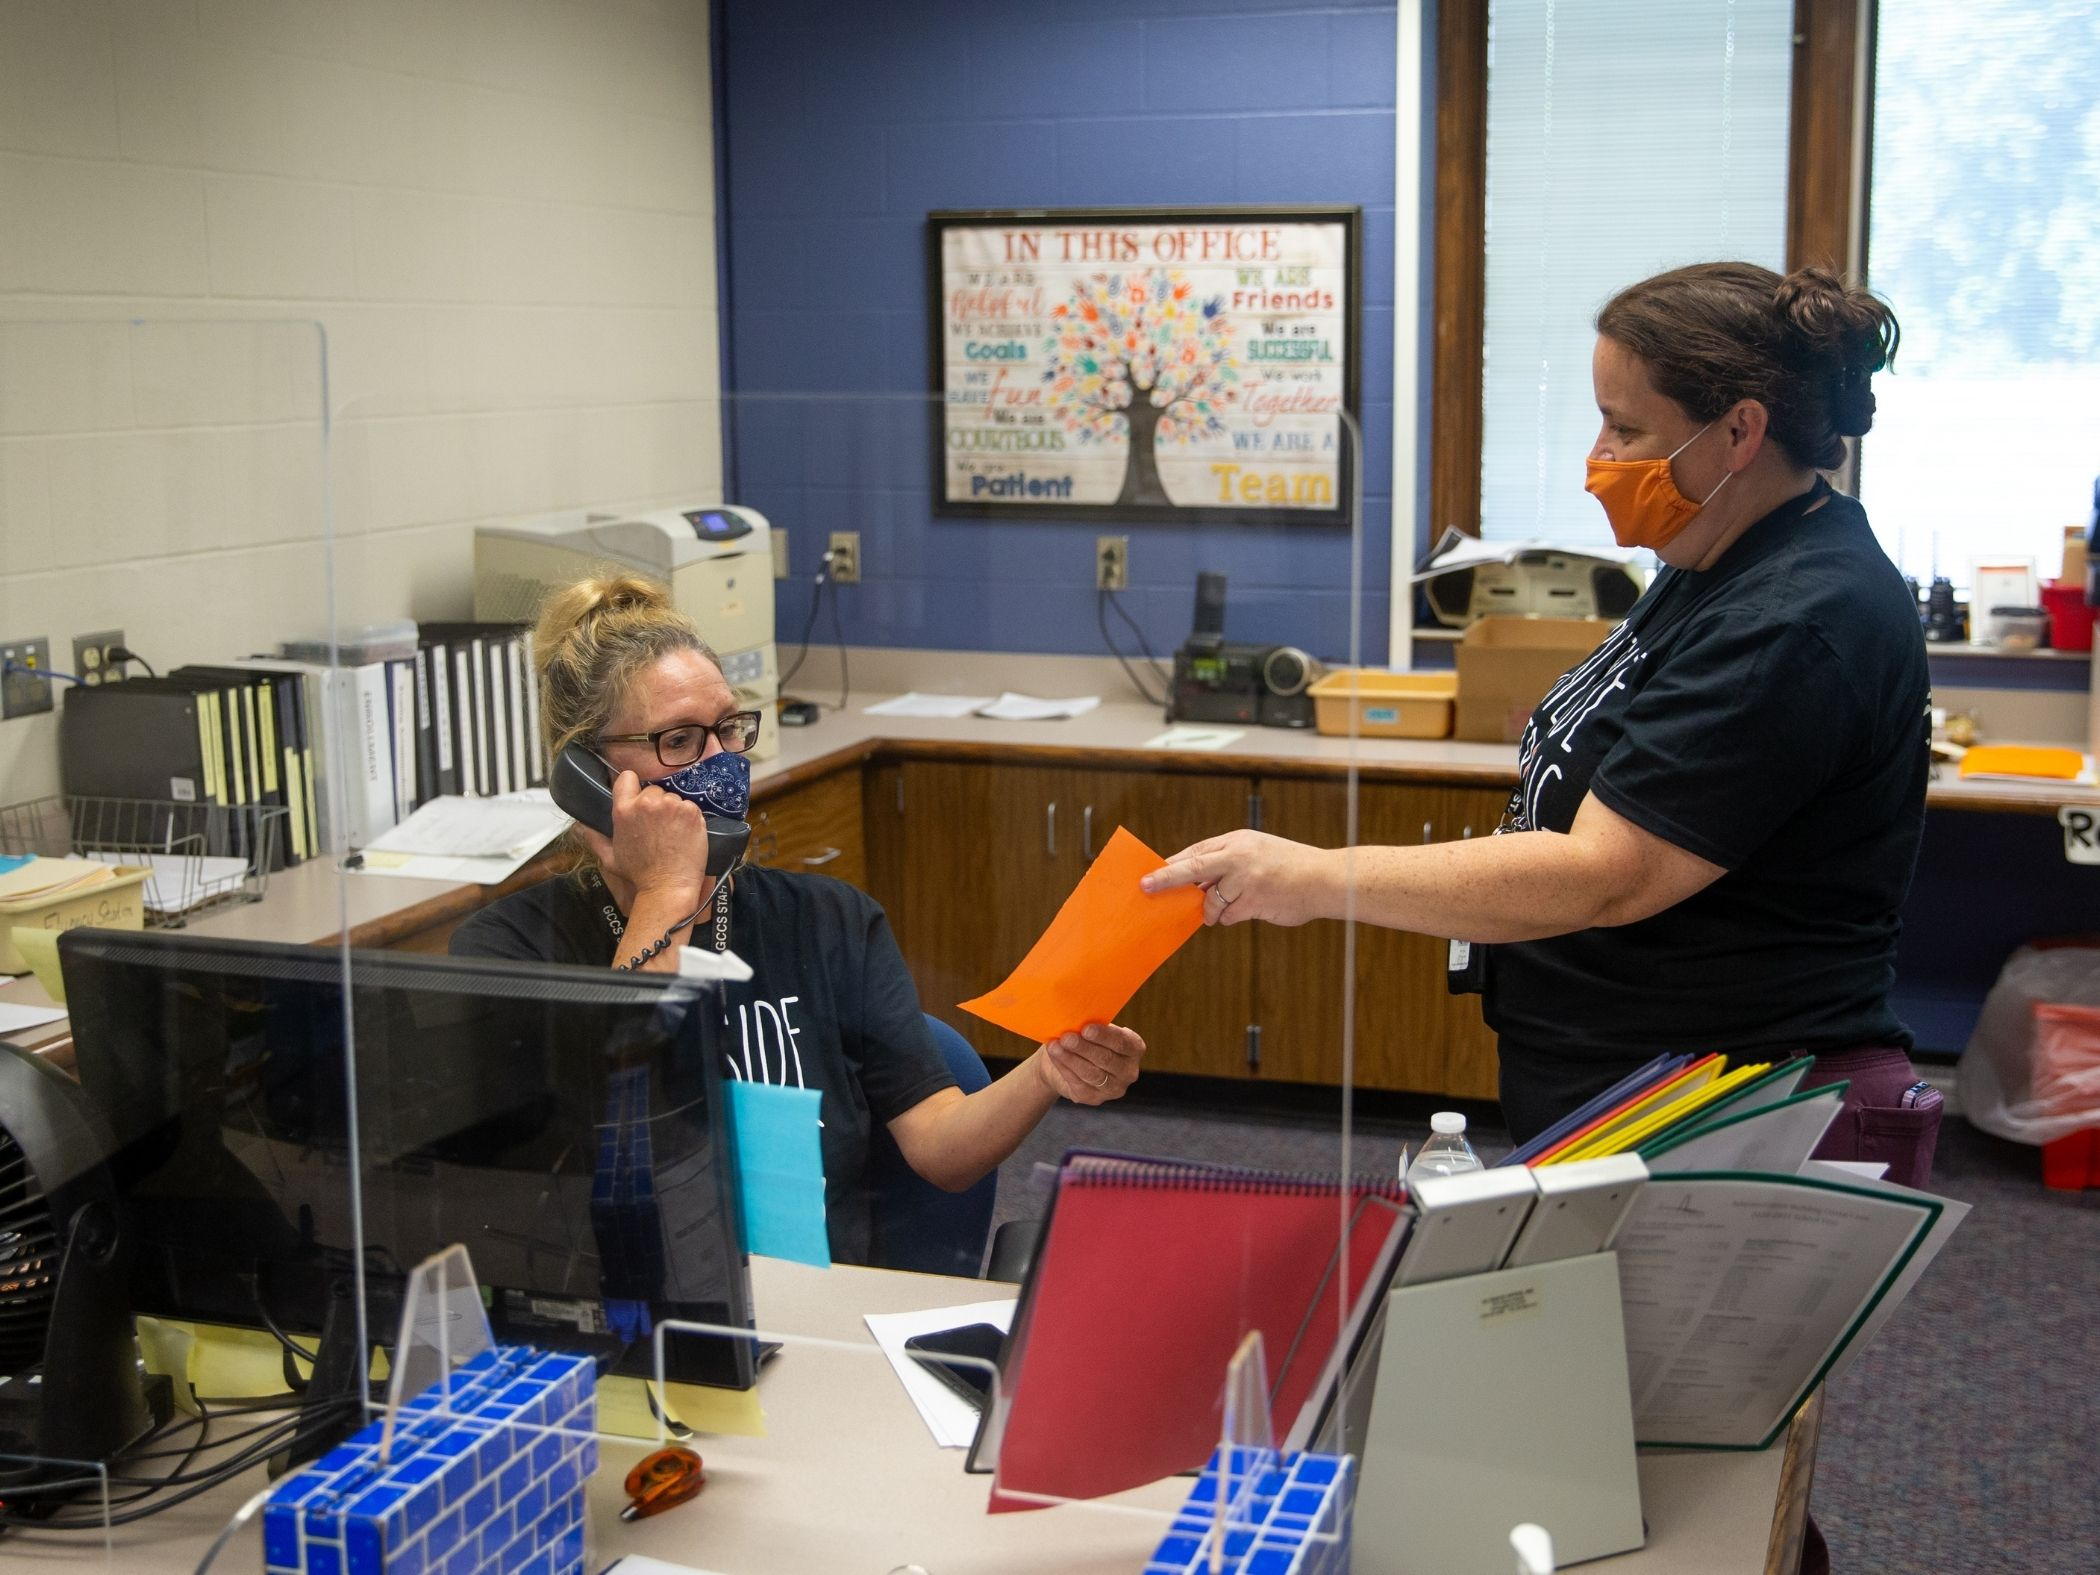 A staff member with an orange mask hands a piece of paper to seated office worker